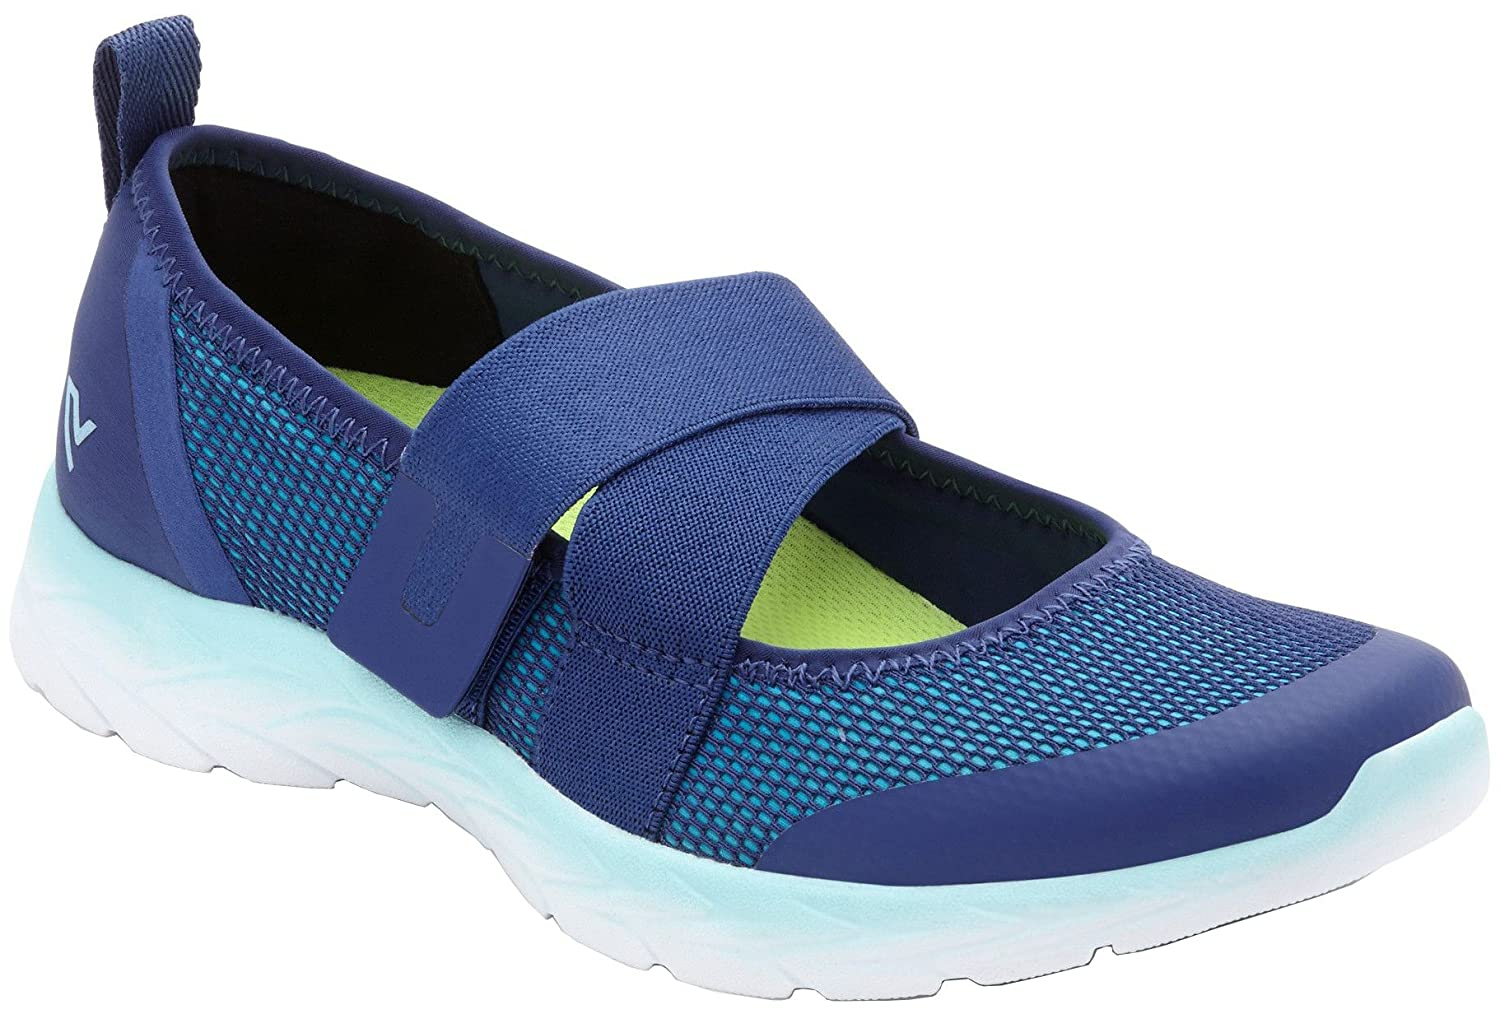 Vionic Brisk Pace Mary Jane B071WY9FK6 7.5 M US|Blue Teal